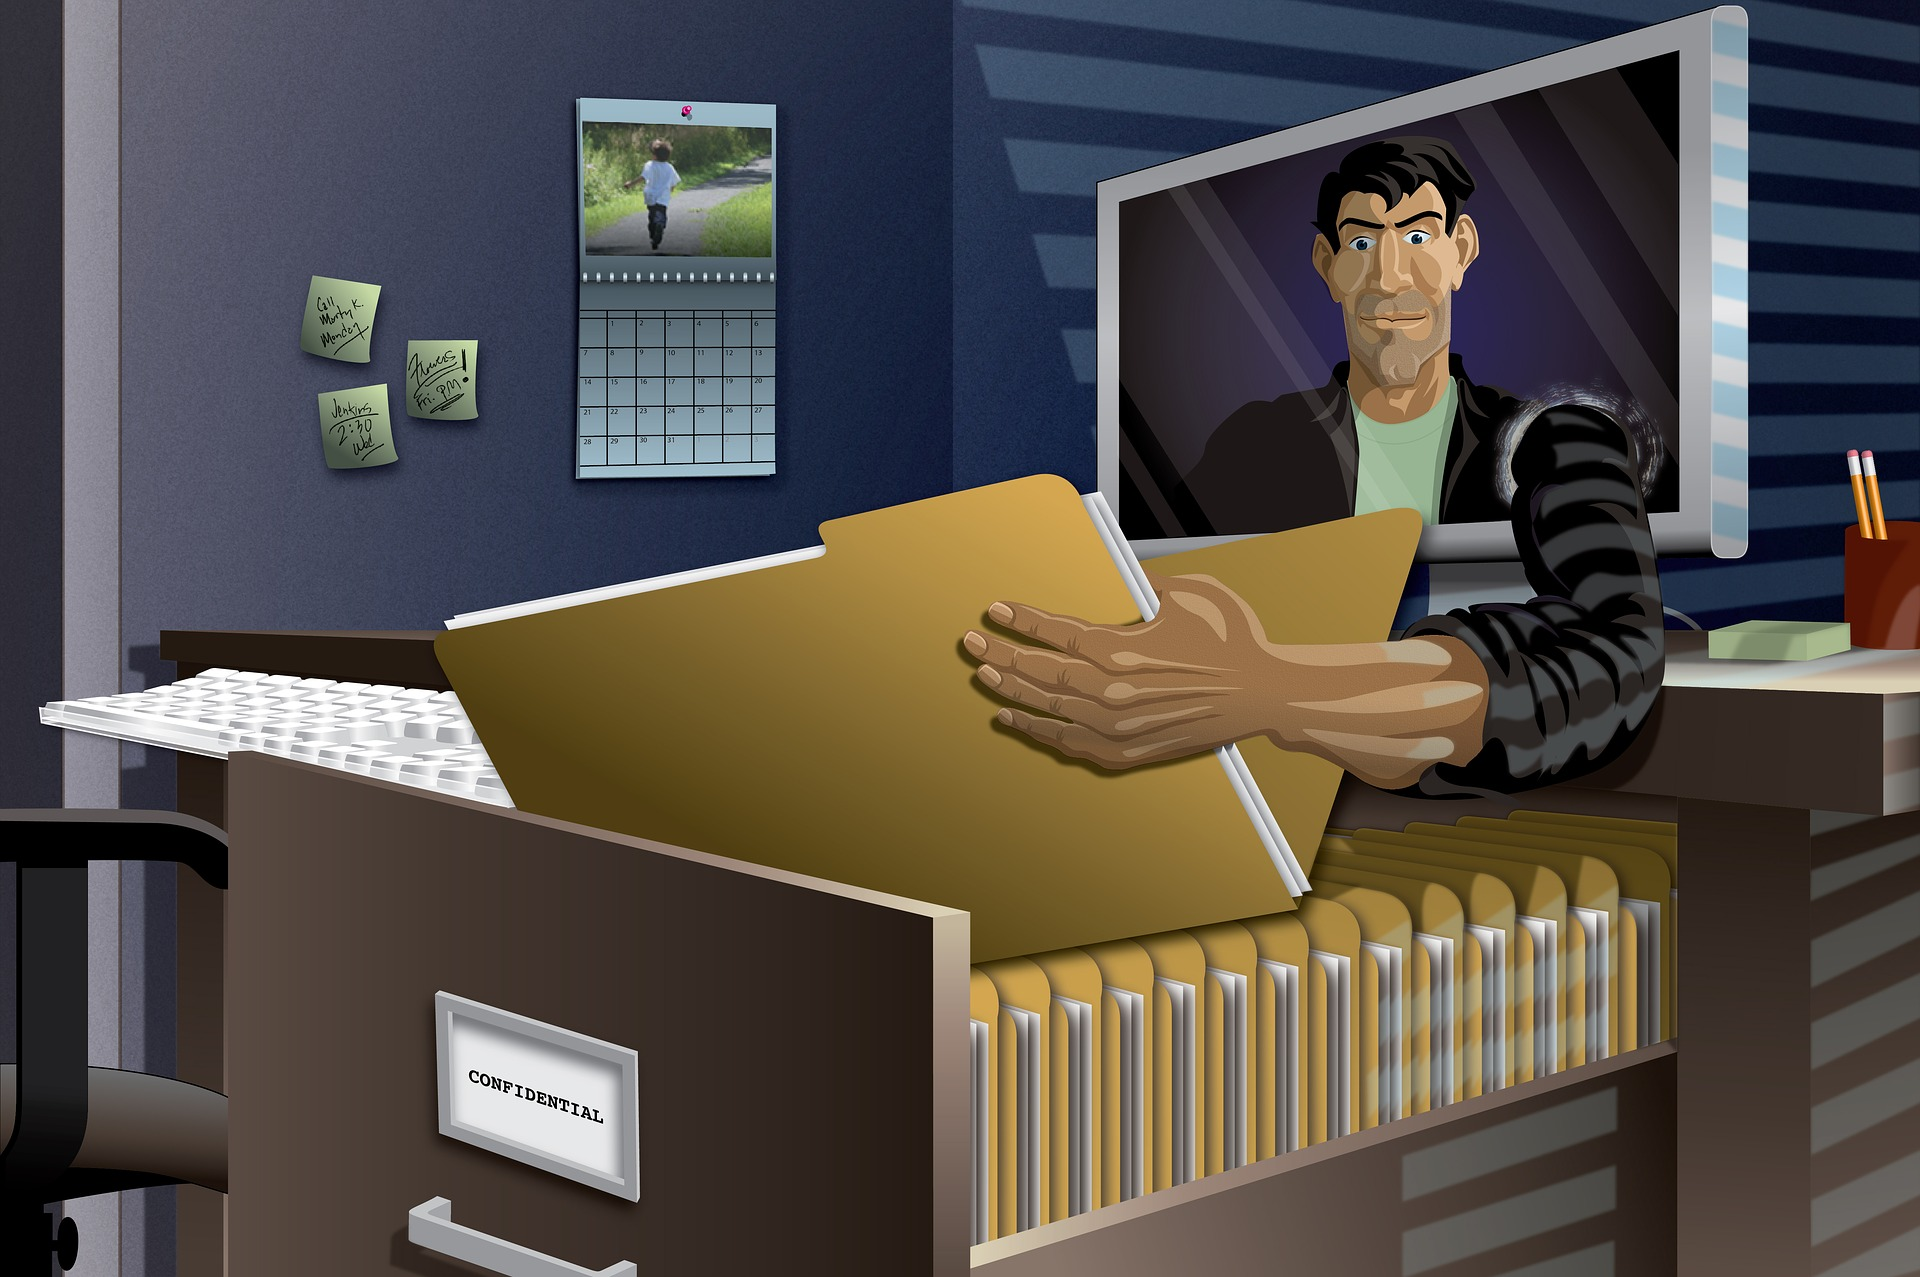 A cartoon showing a man coming out of a computer to take away a file as a cybersecurity crime